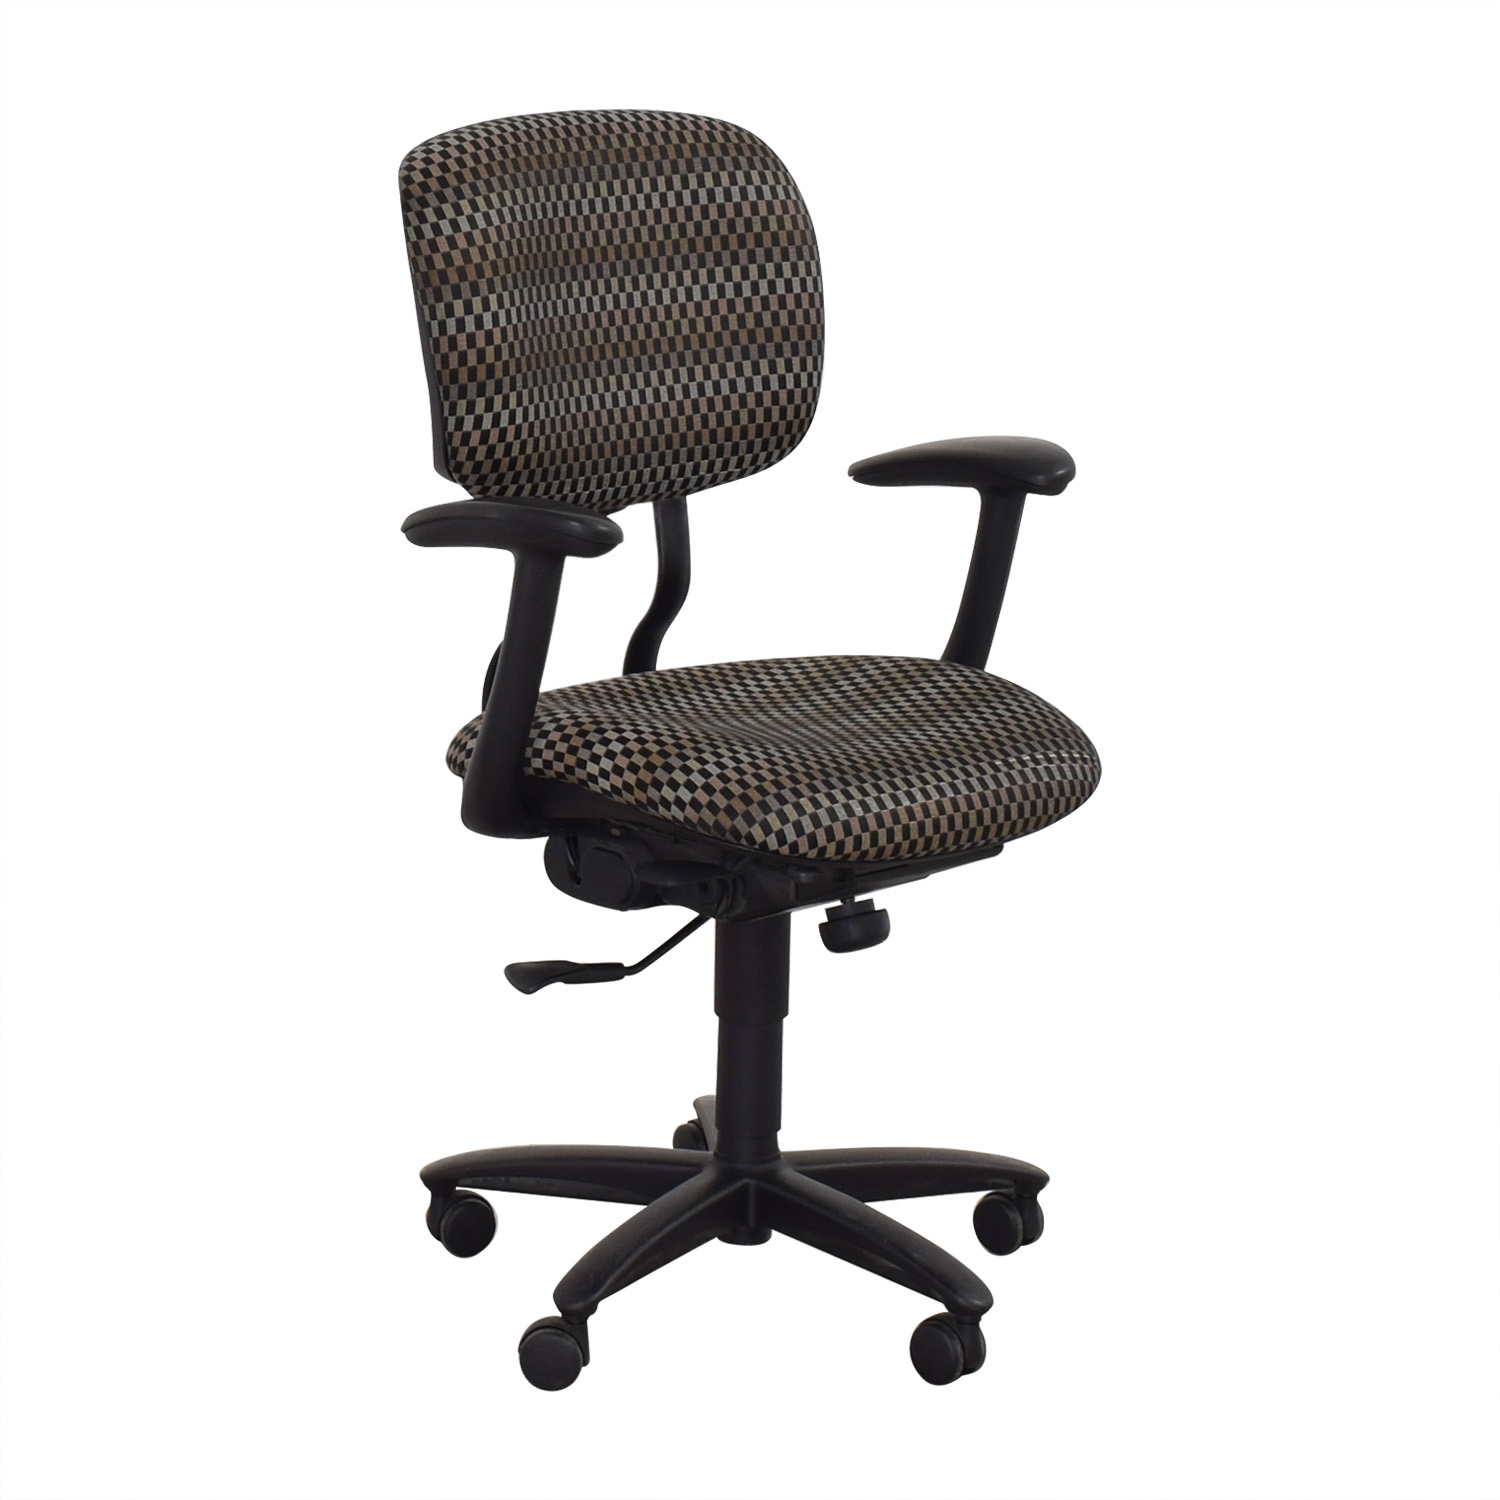 Haworth Haworth Improv Office Desk Chairs pa